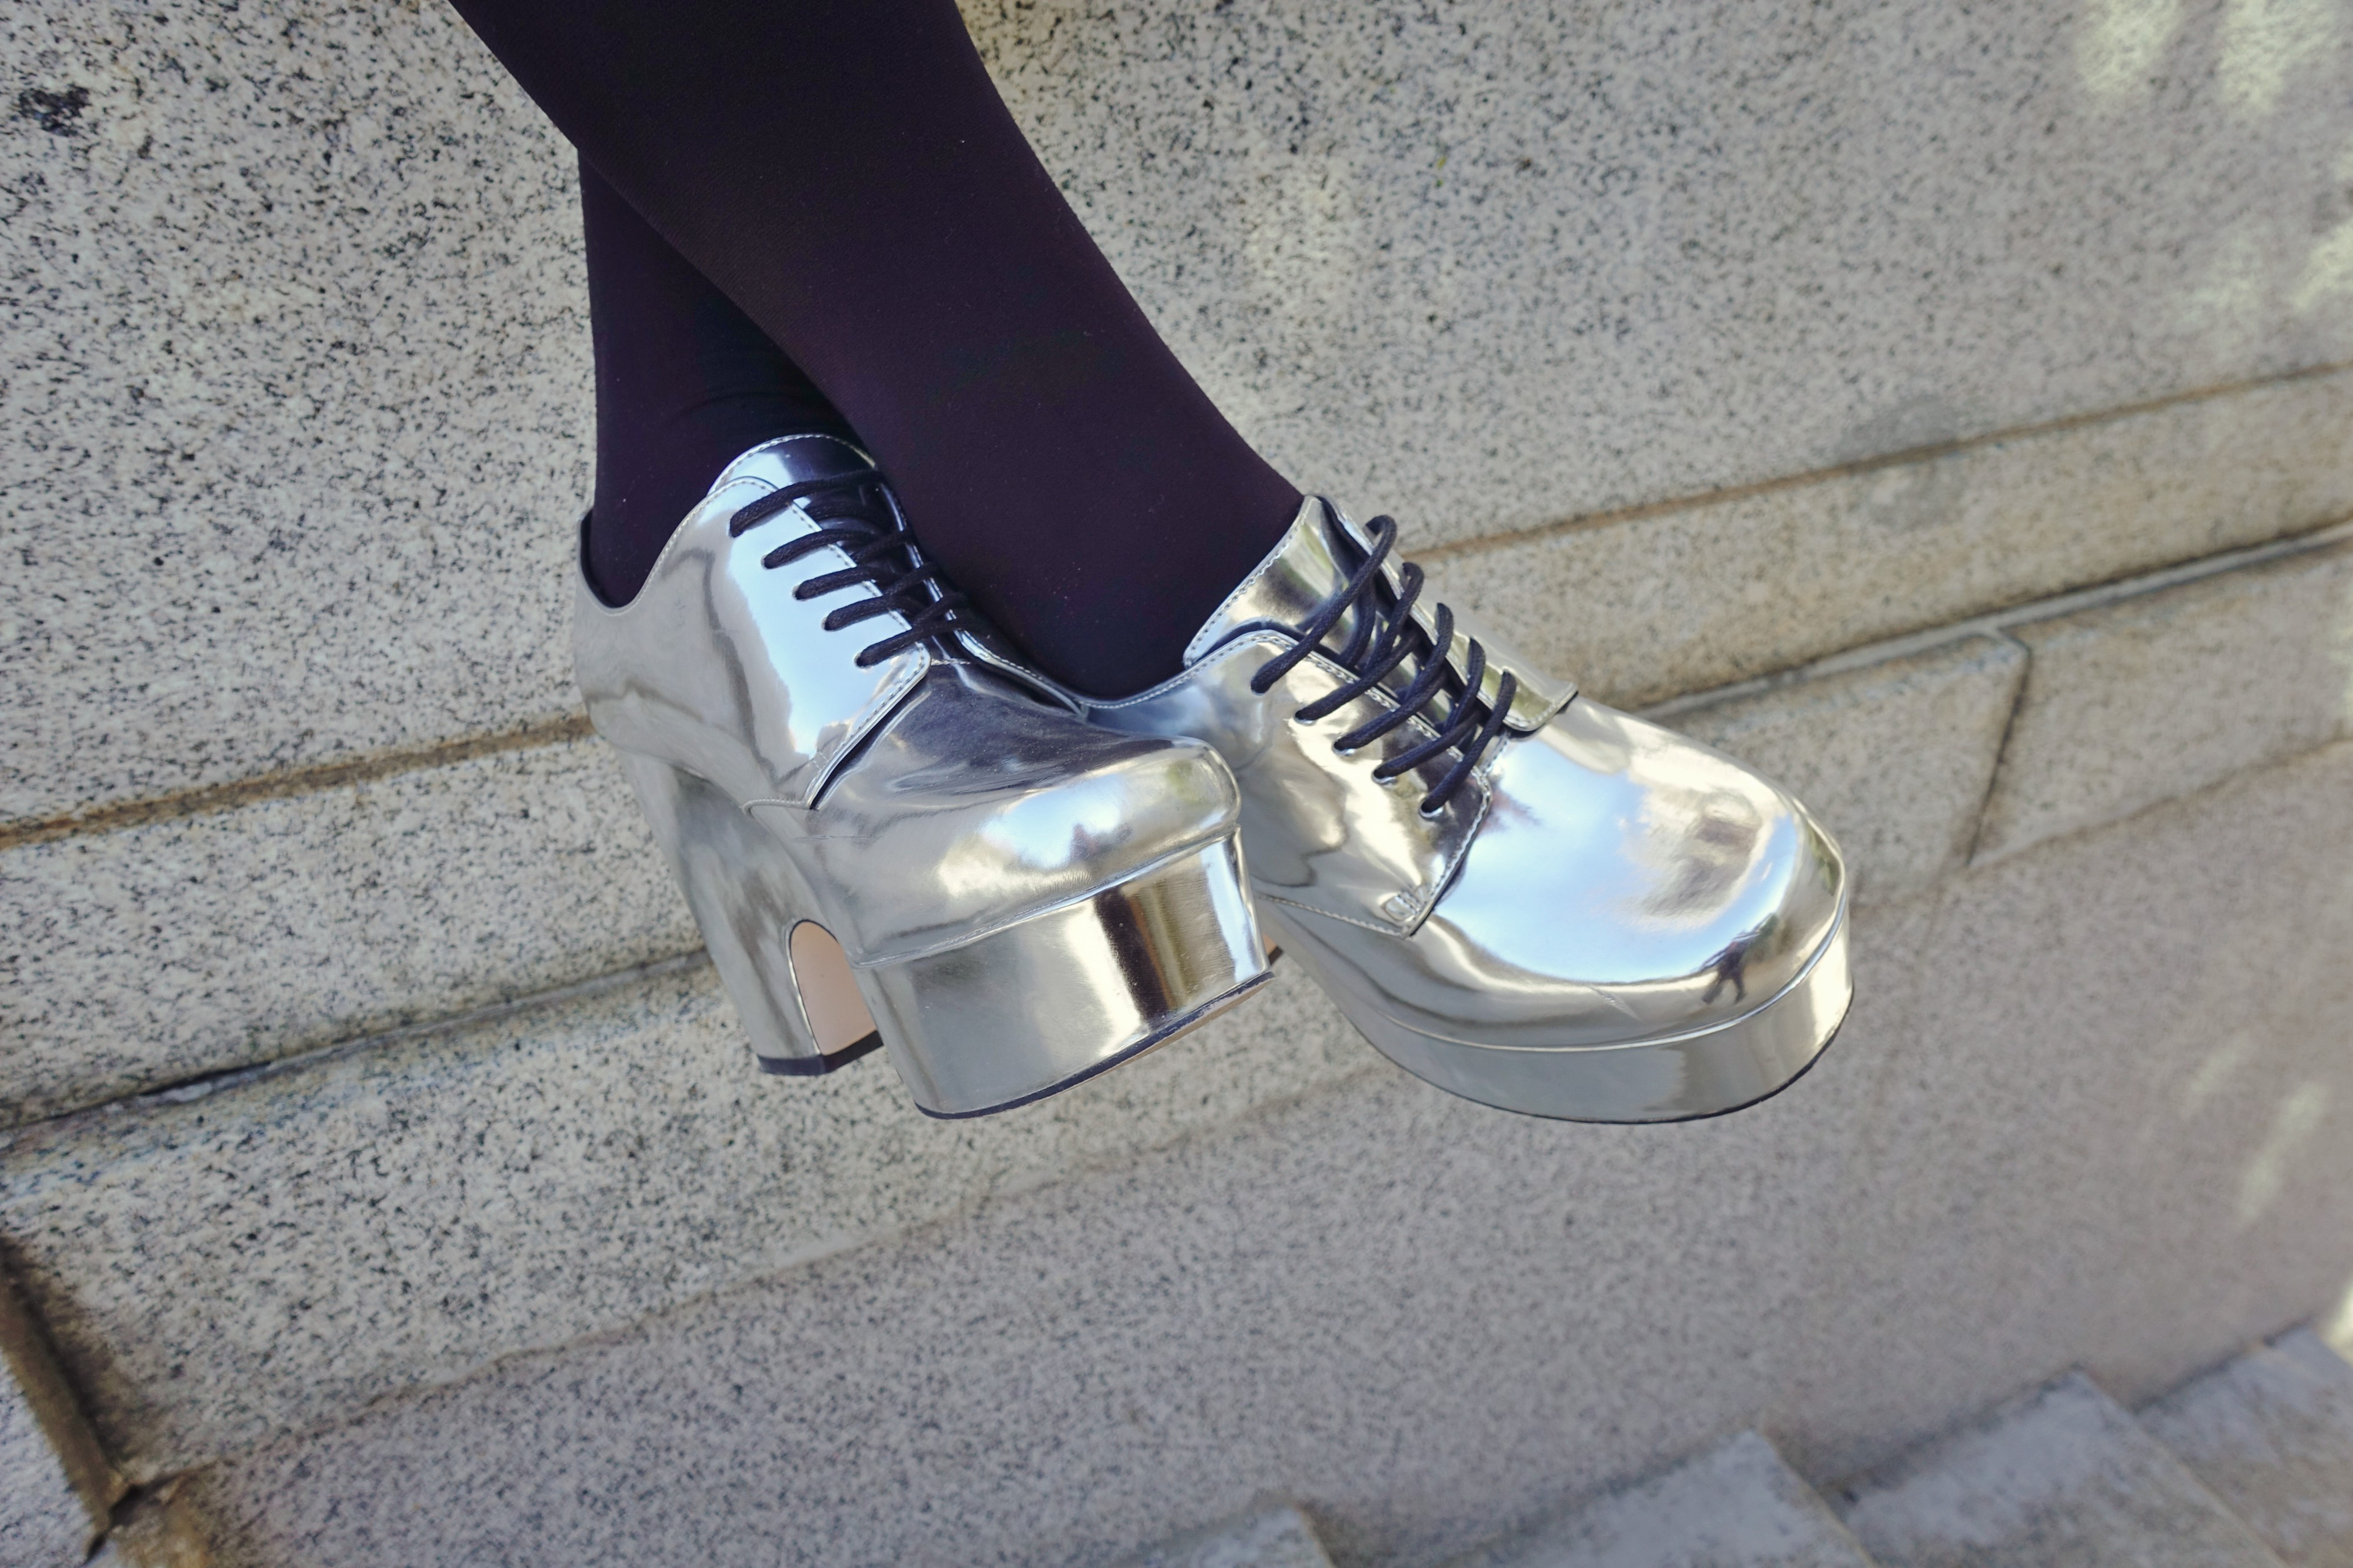 Zapatos-plateados-ChicAdicta-asos-shoes-blog-de-moda-silver-shoes-influencer-Madrid-PiensaenChic-Piensa-en-Chic